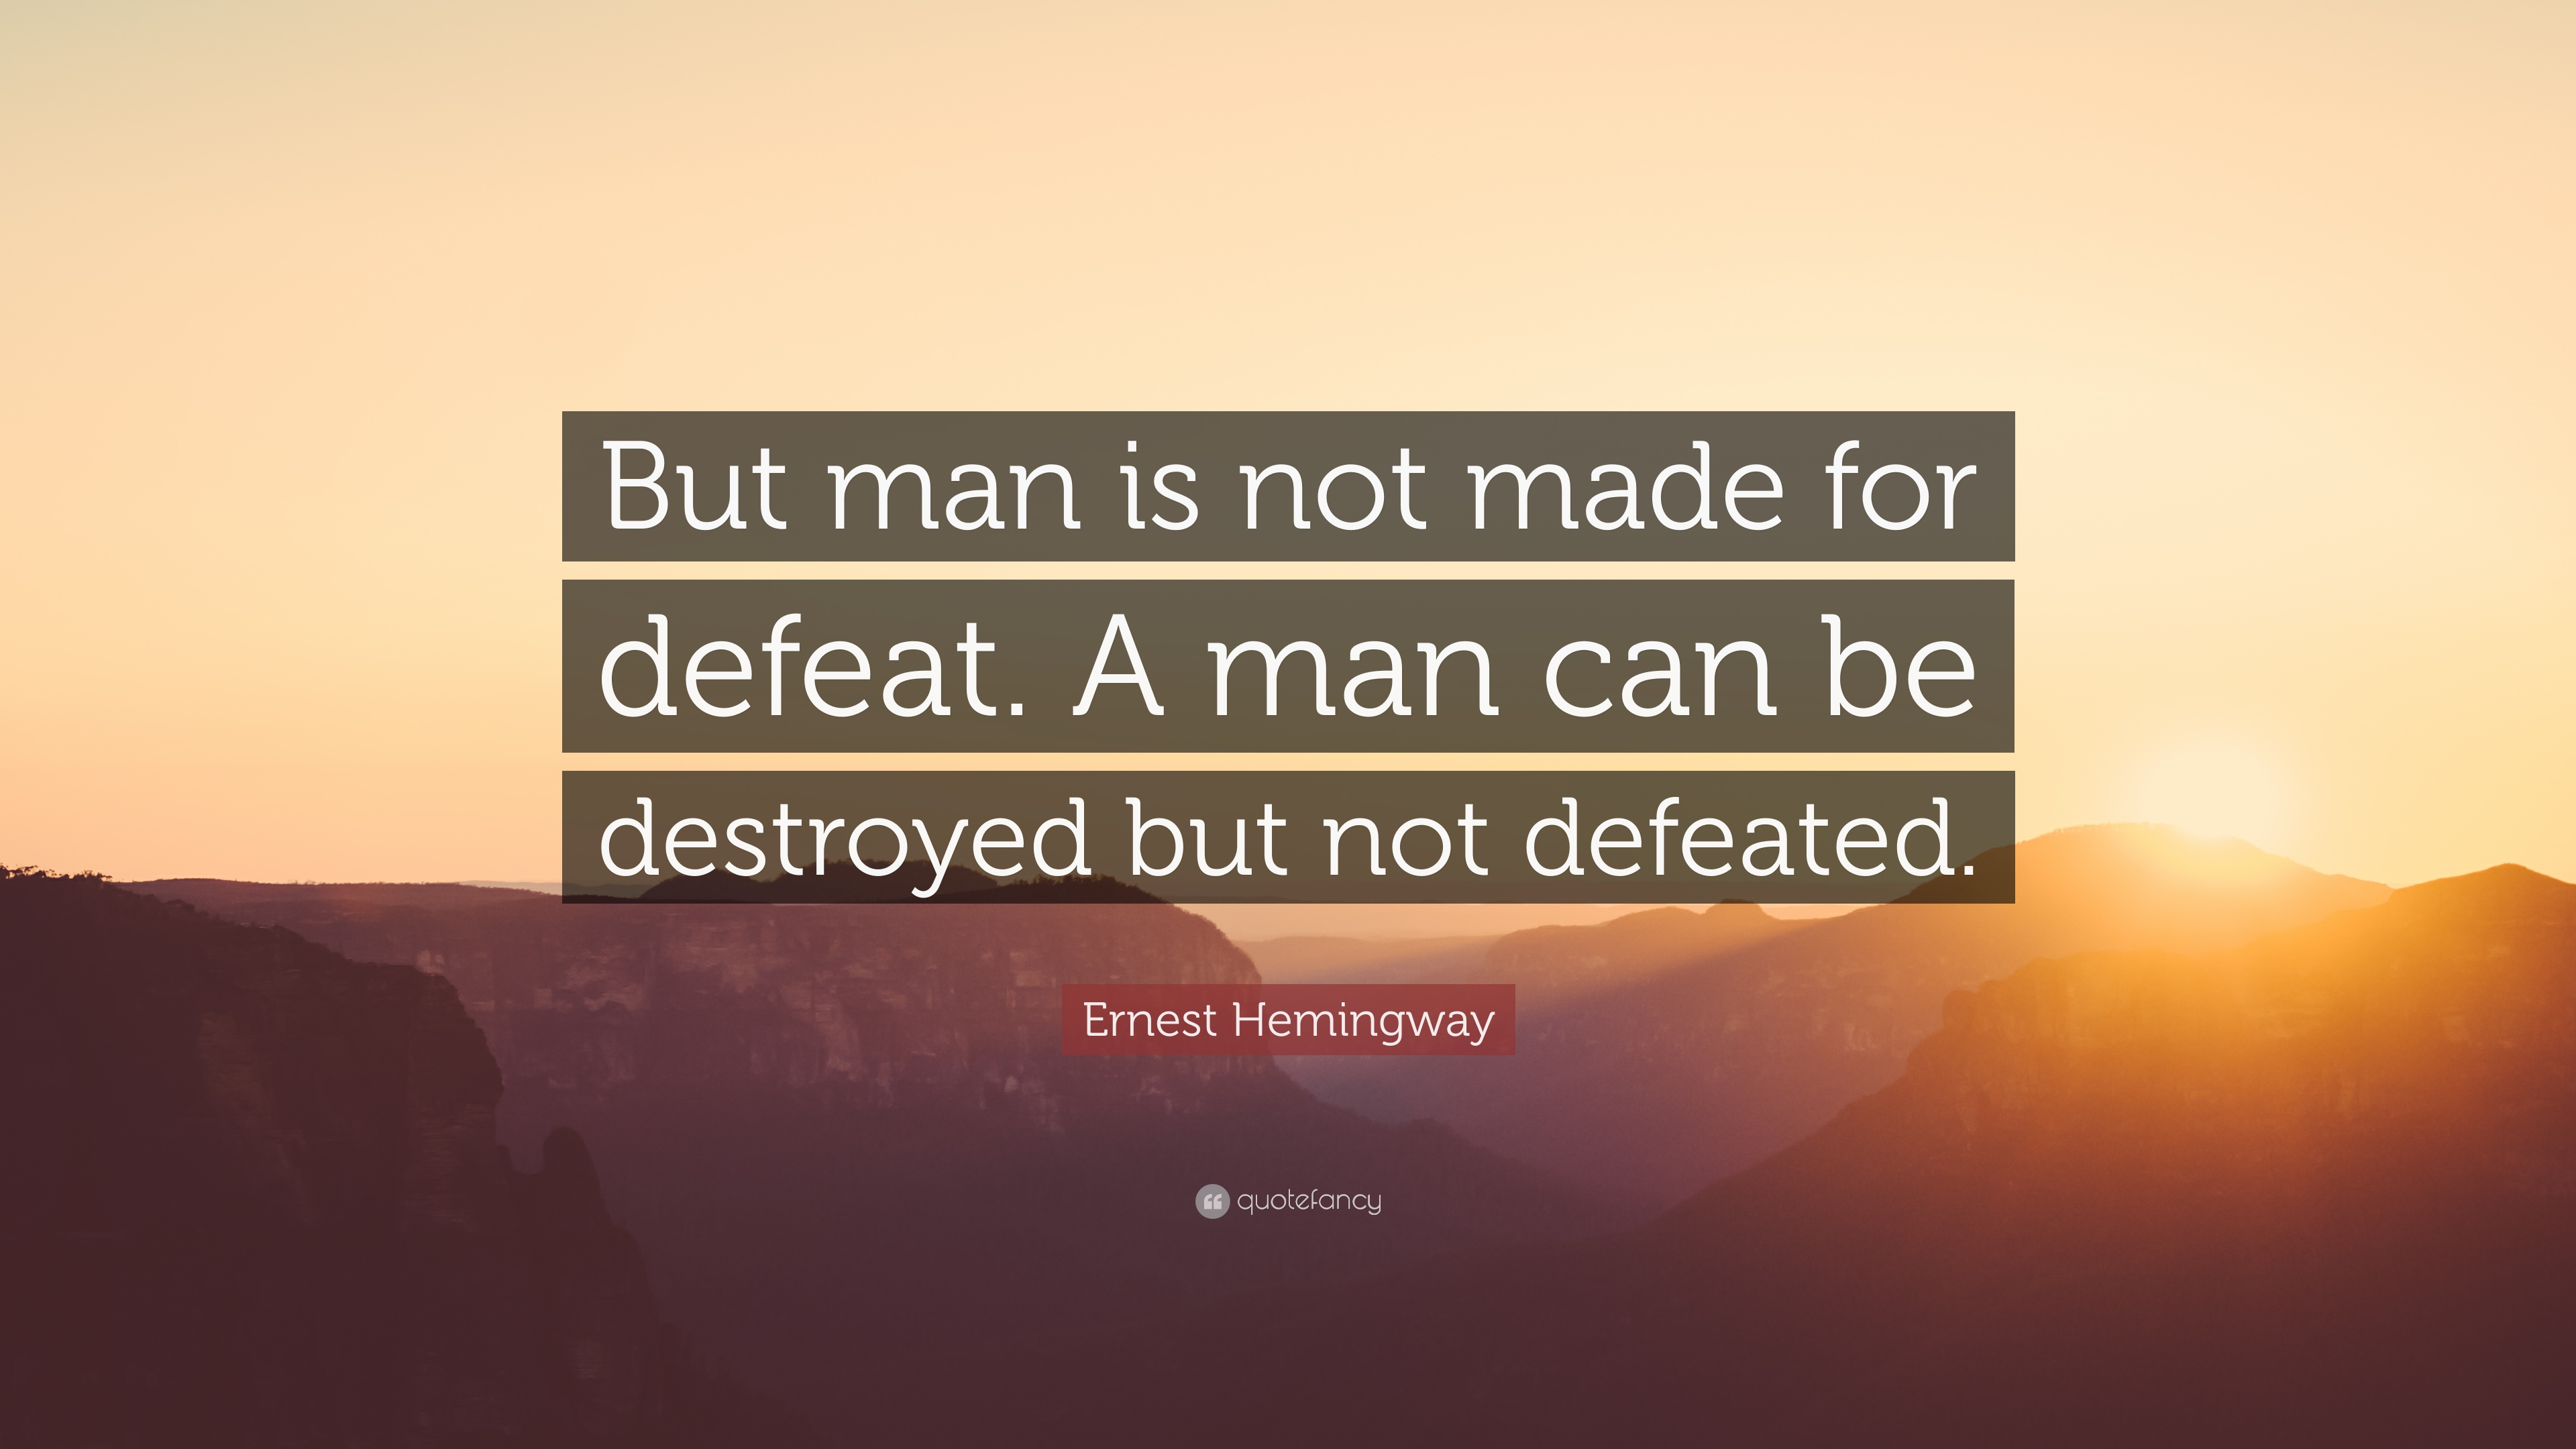 """santiago the man who would not be defeated """"a man can be destroyed but not defeated"""" in the old man and the sea, santiago says, """"a man can be destroyed but not defeated (page 93)"""" the true."""